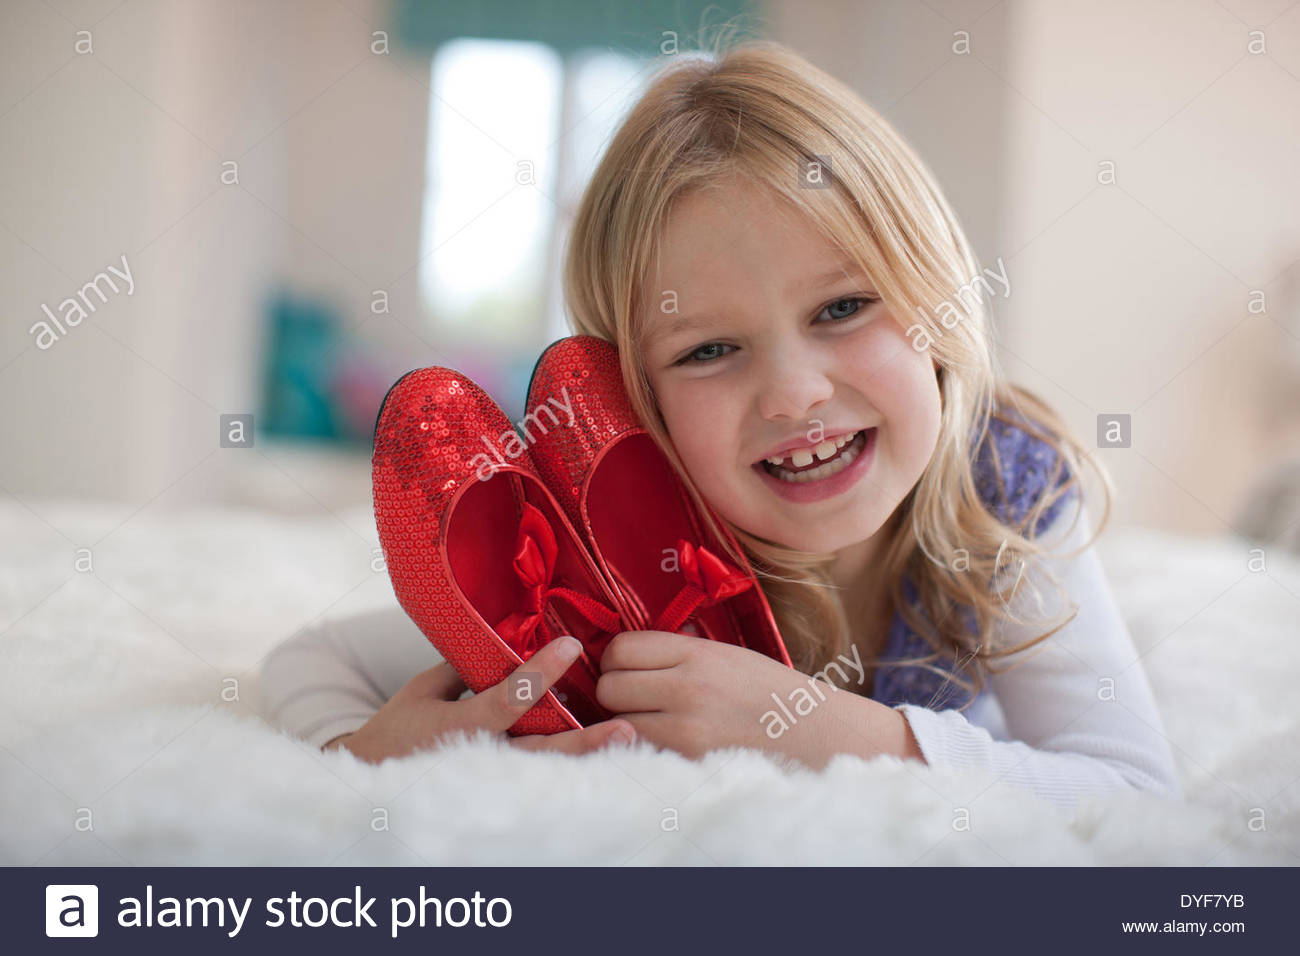 Smiling girl holding red shoes - Stock Image